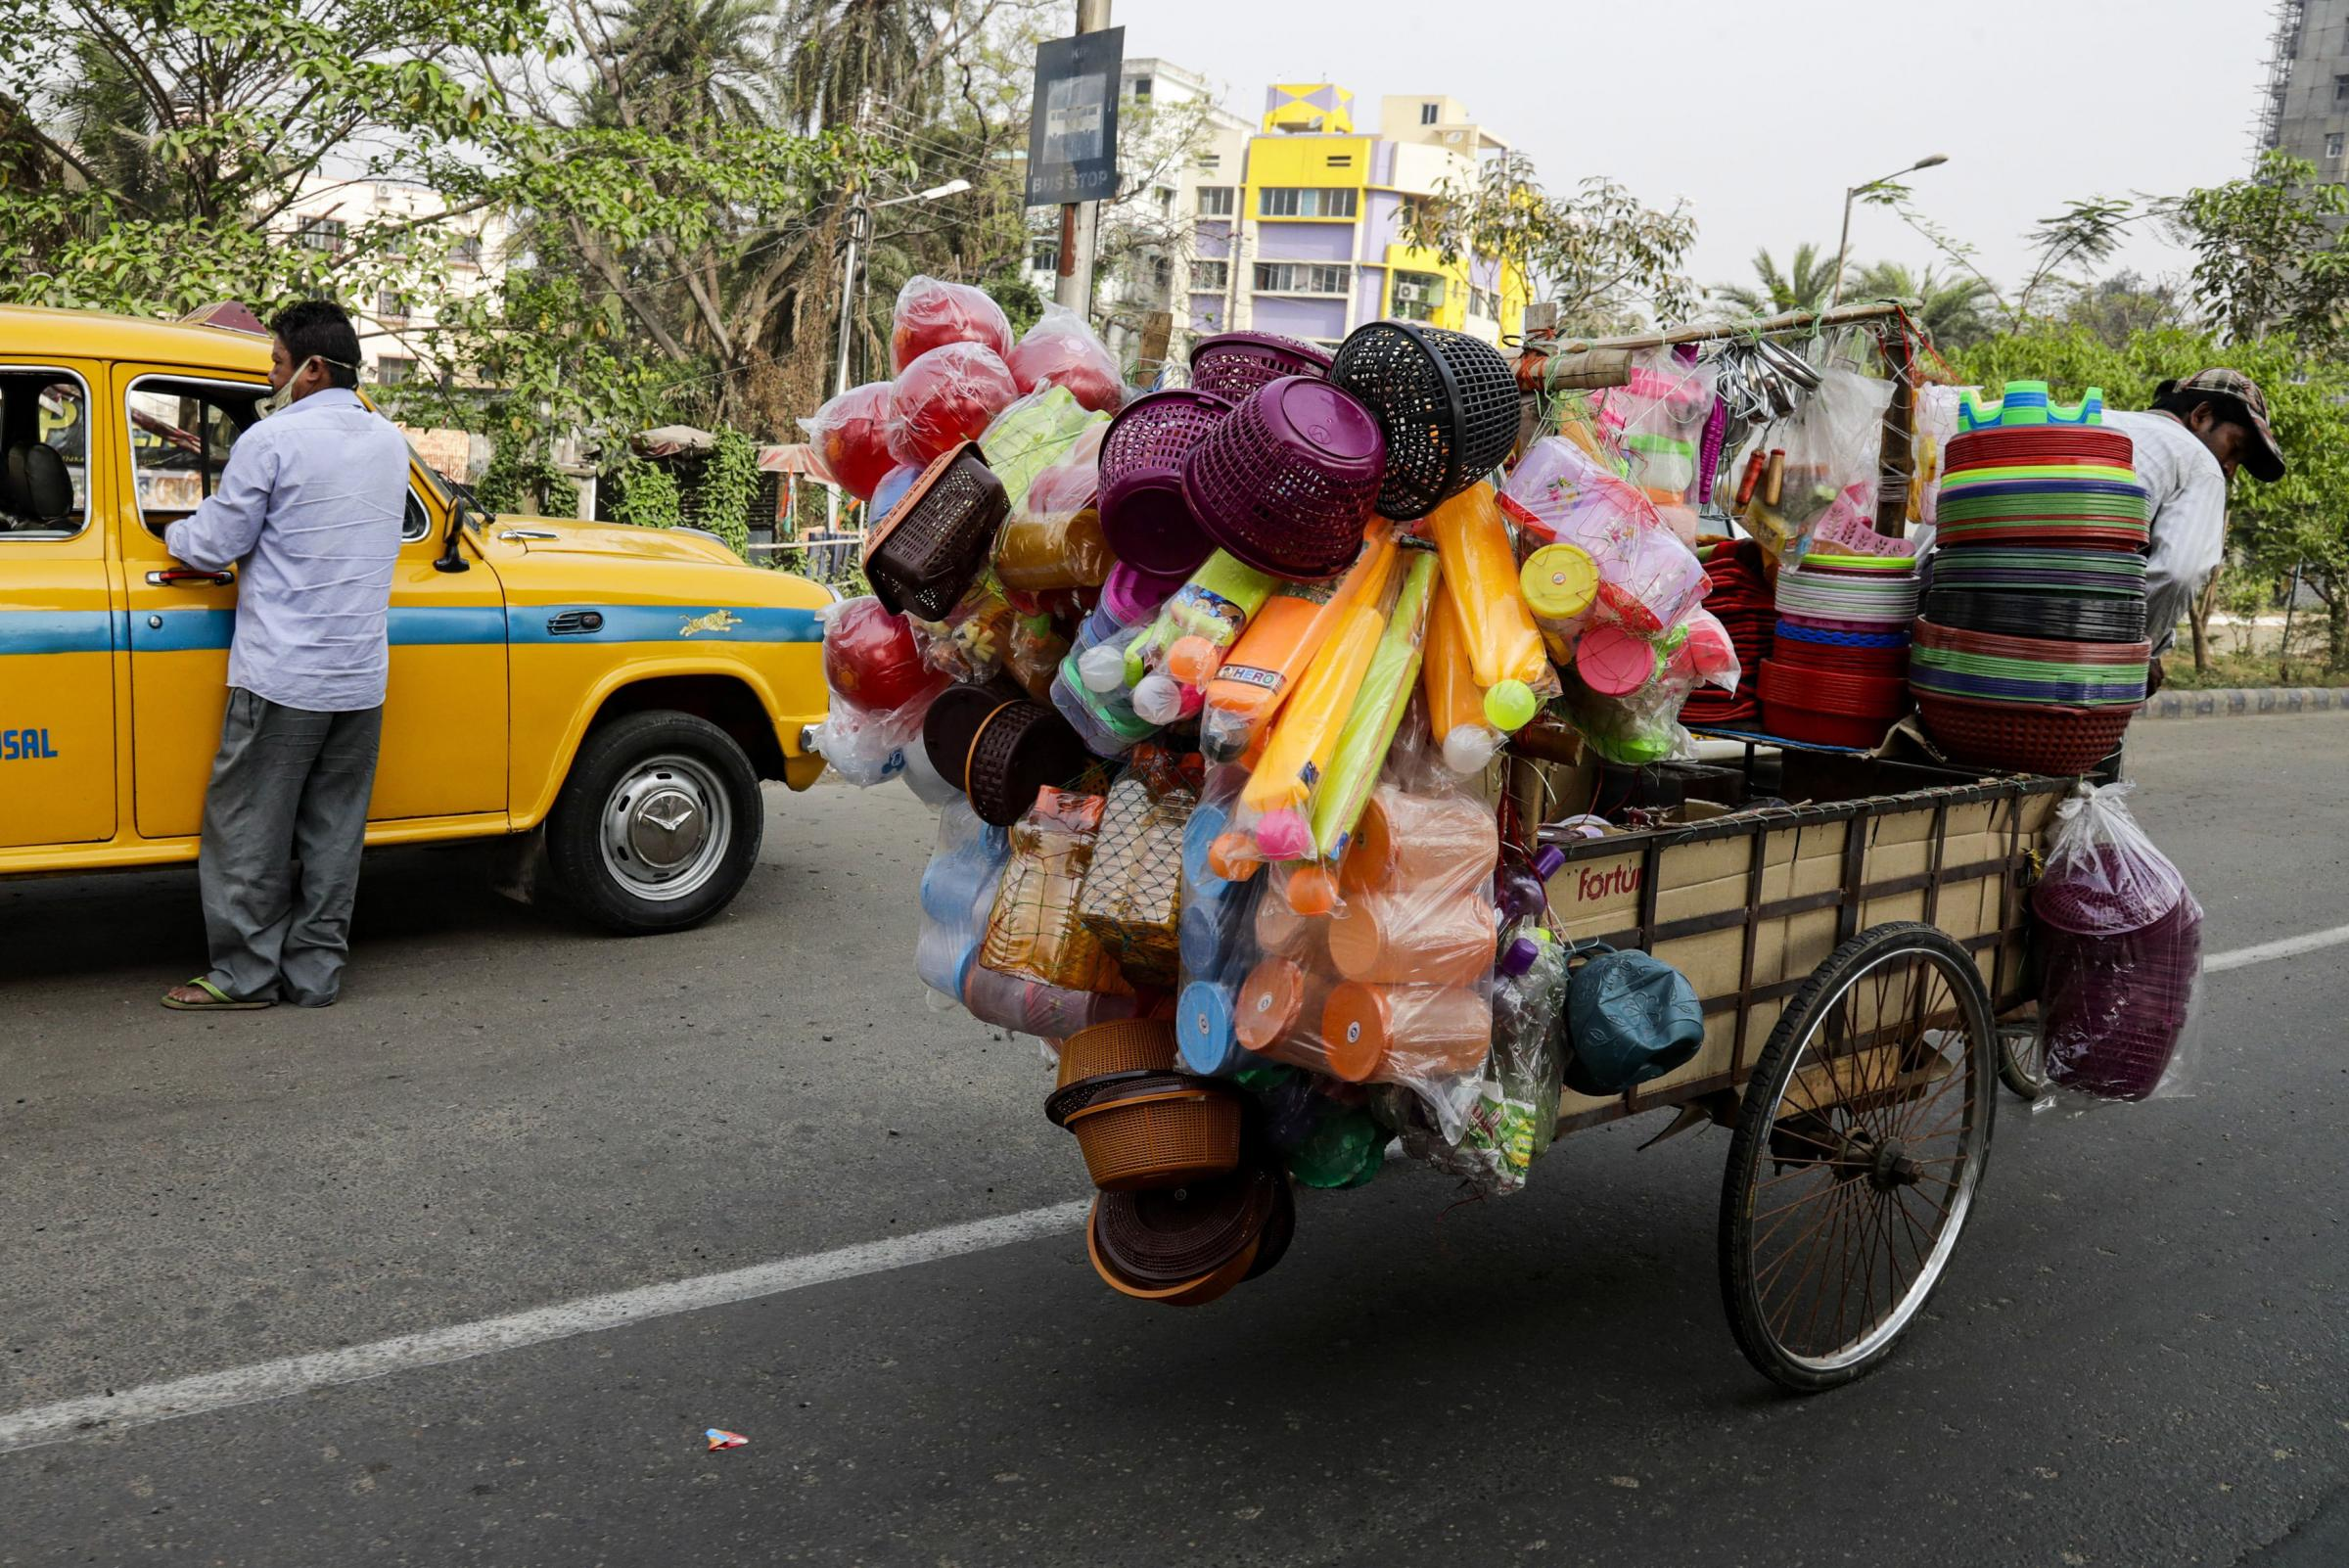 A man rides his cart filled with plastic utensils and toys, as a cab driver looks for passengers in Kolkata, India Picture: BIKAS DAS/AP